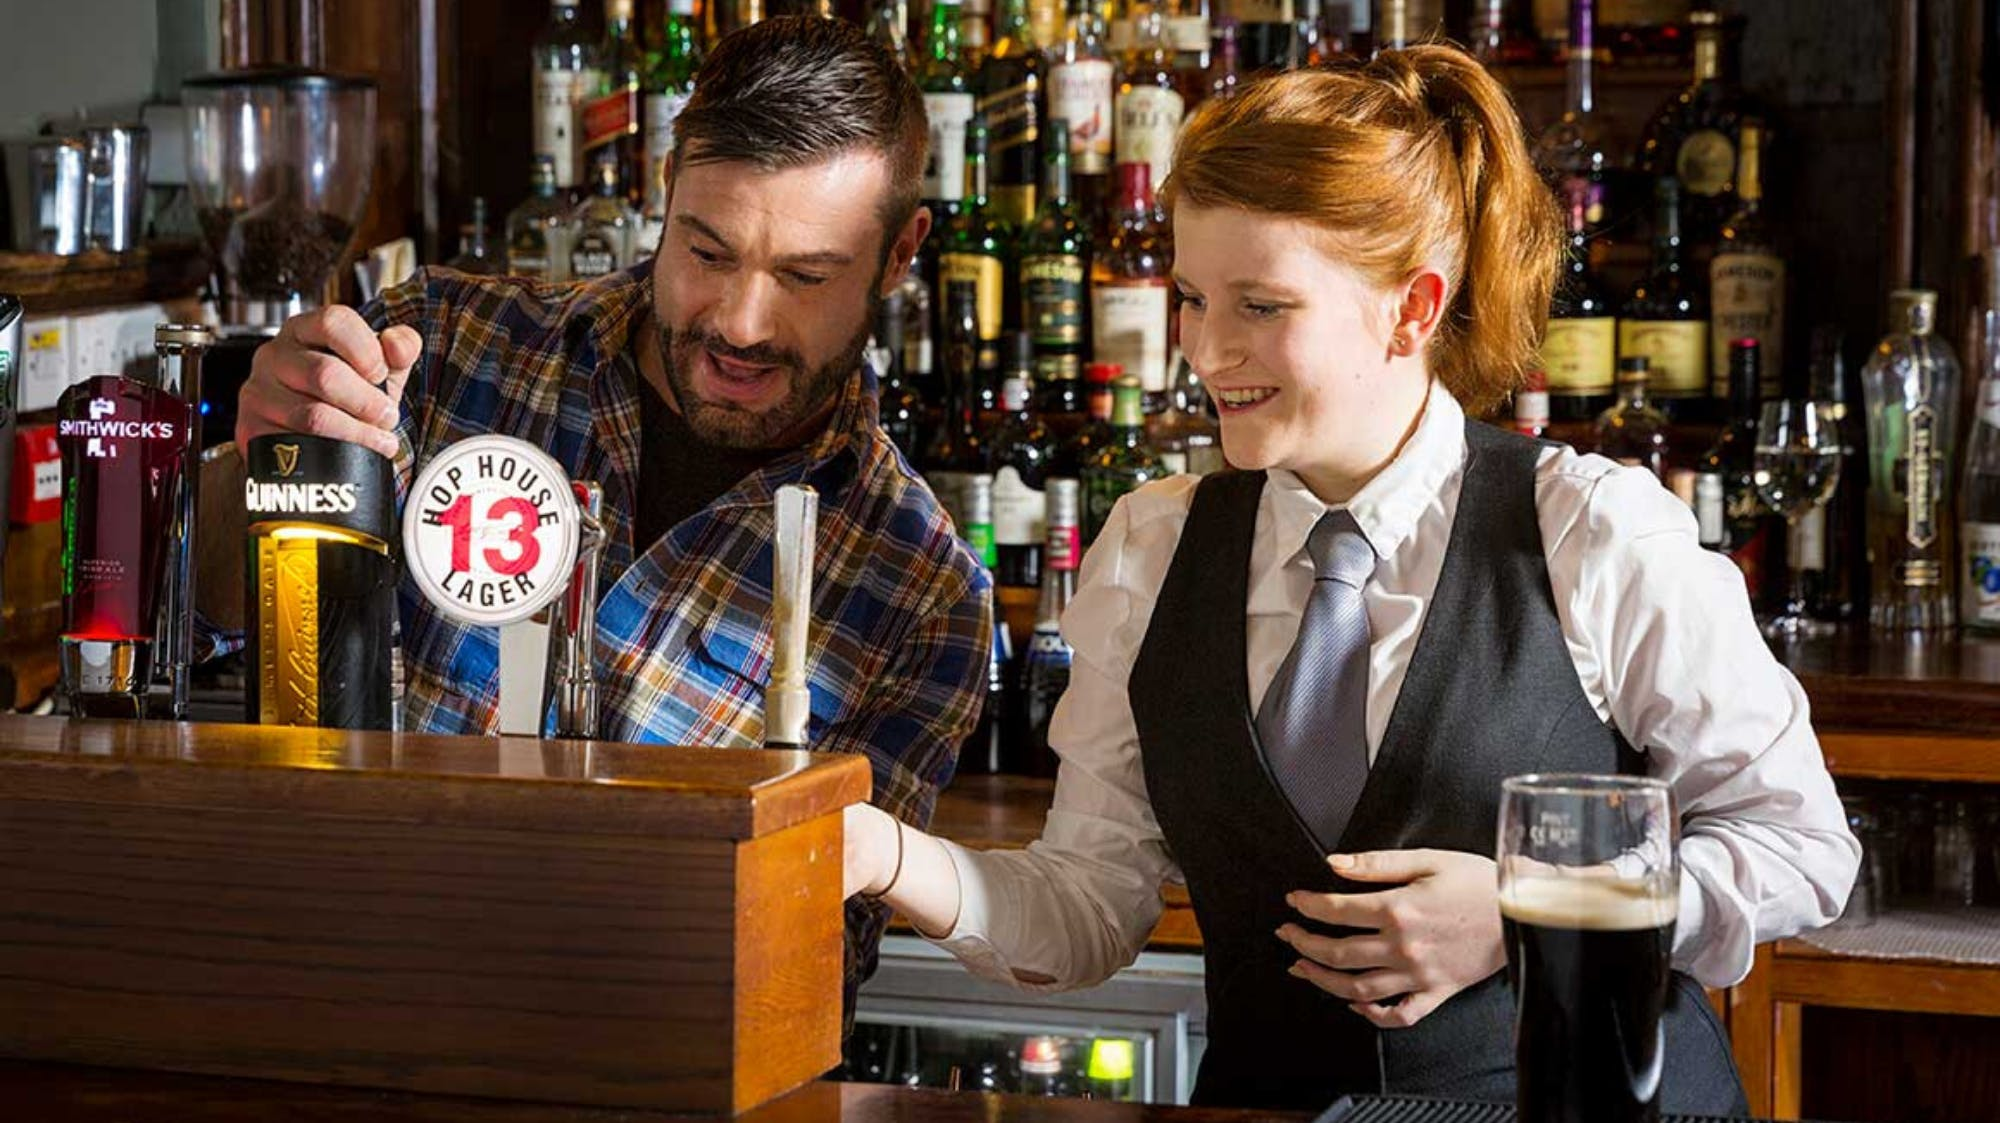 Irish Hospitality Internship in Dublin